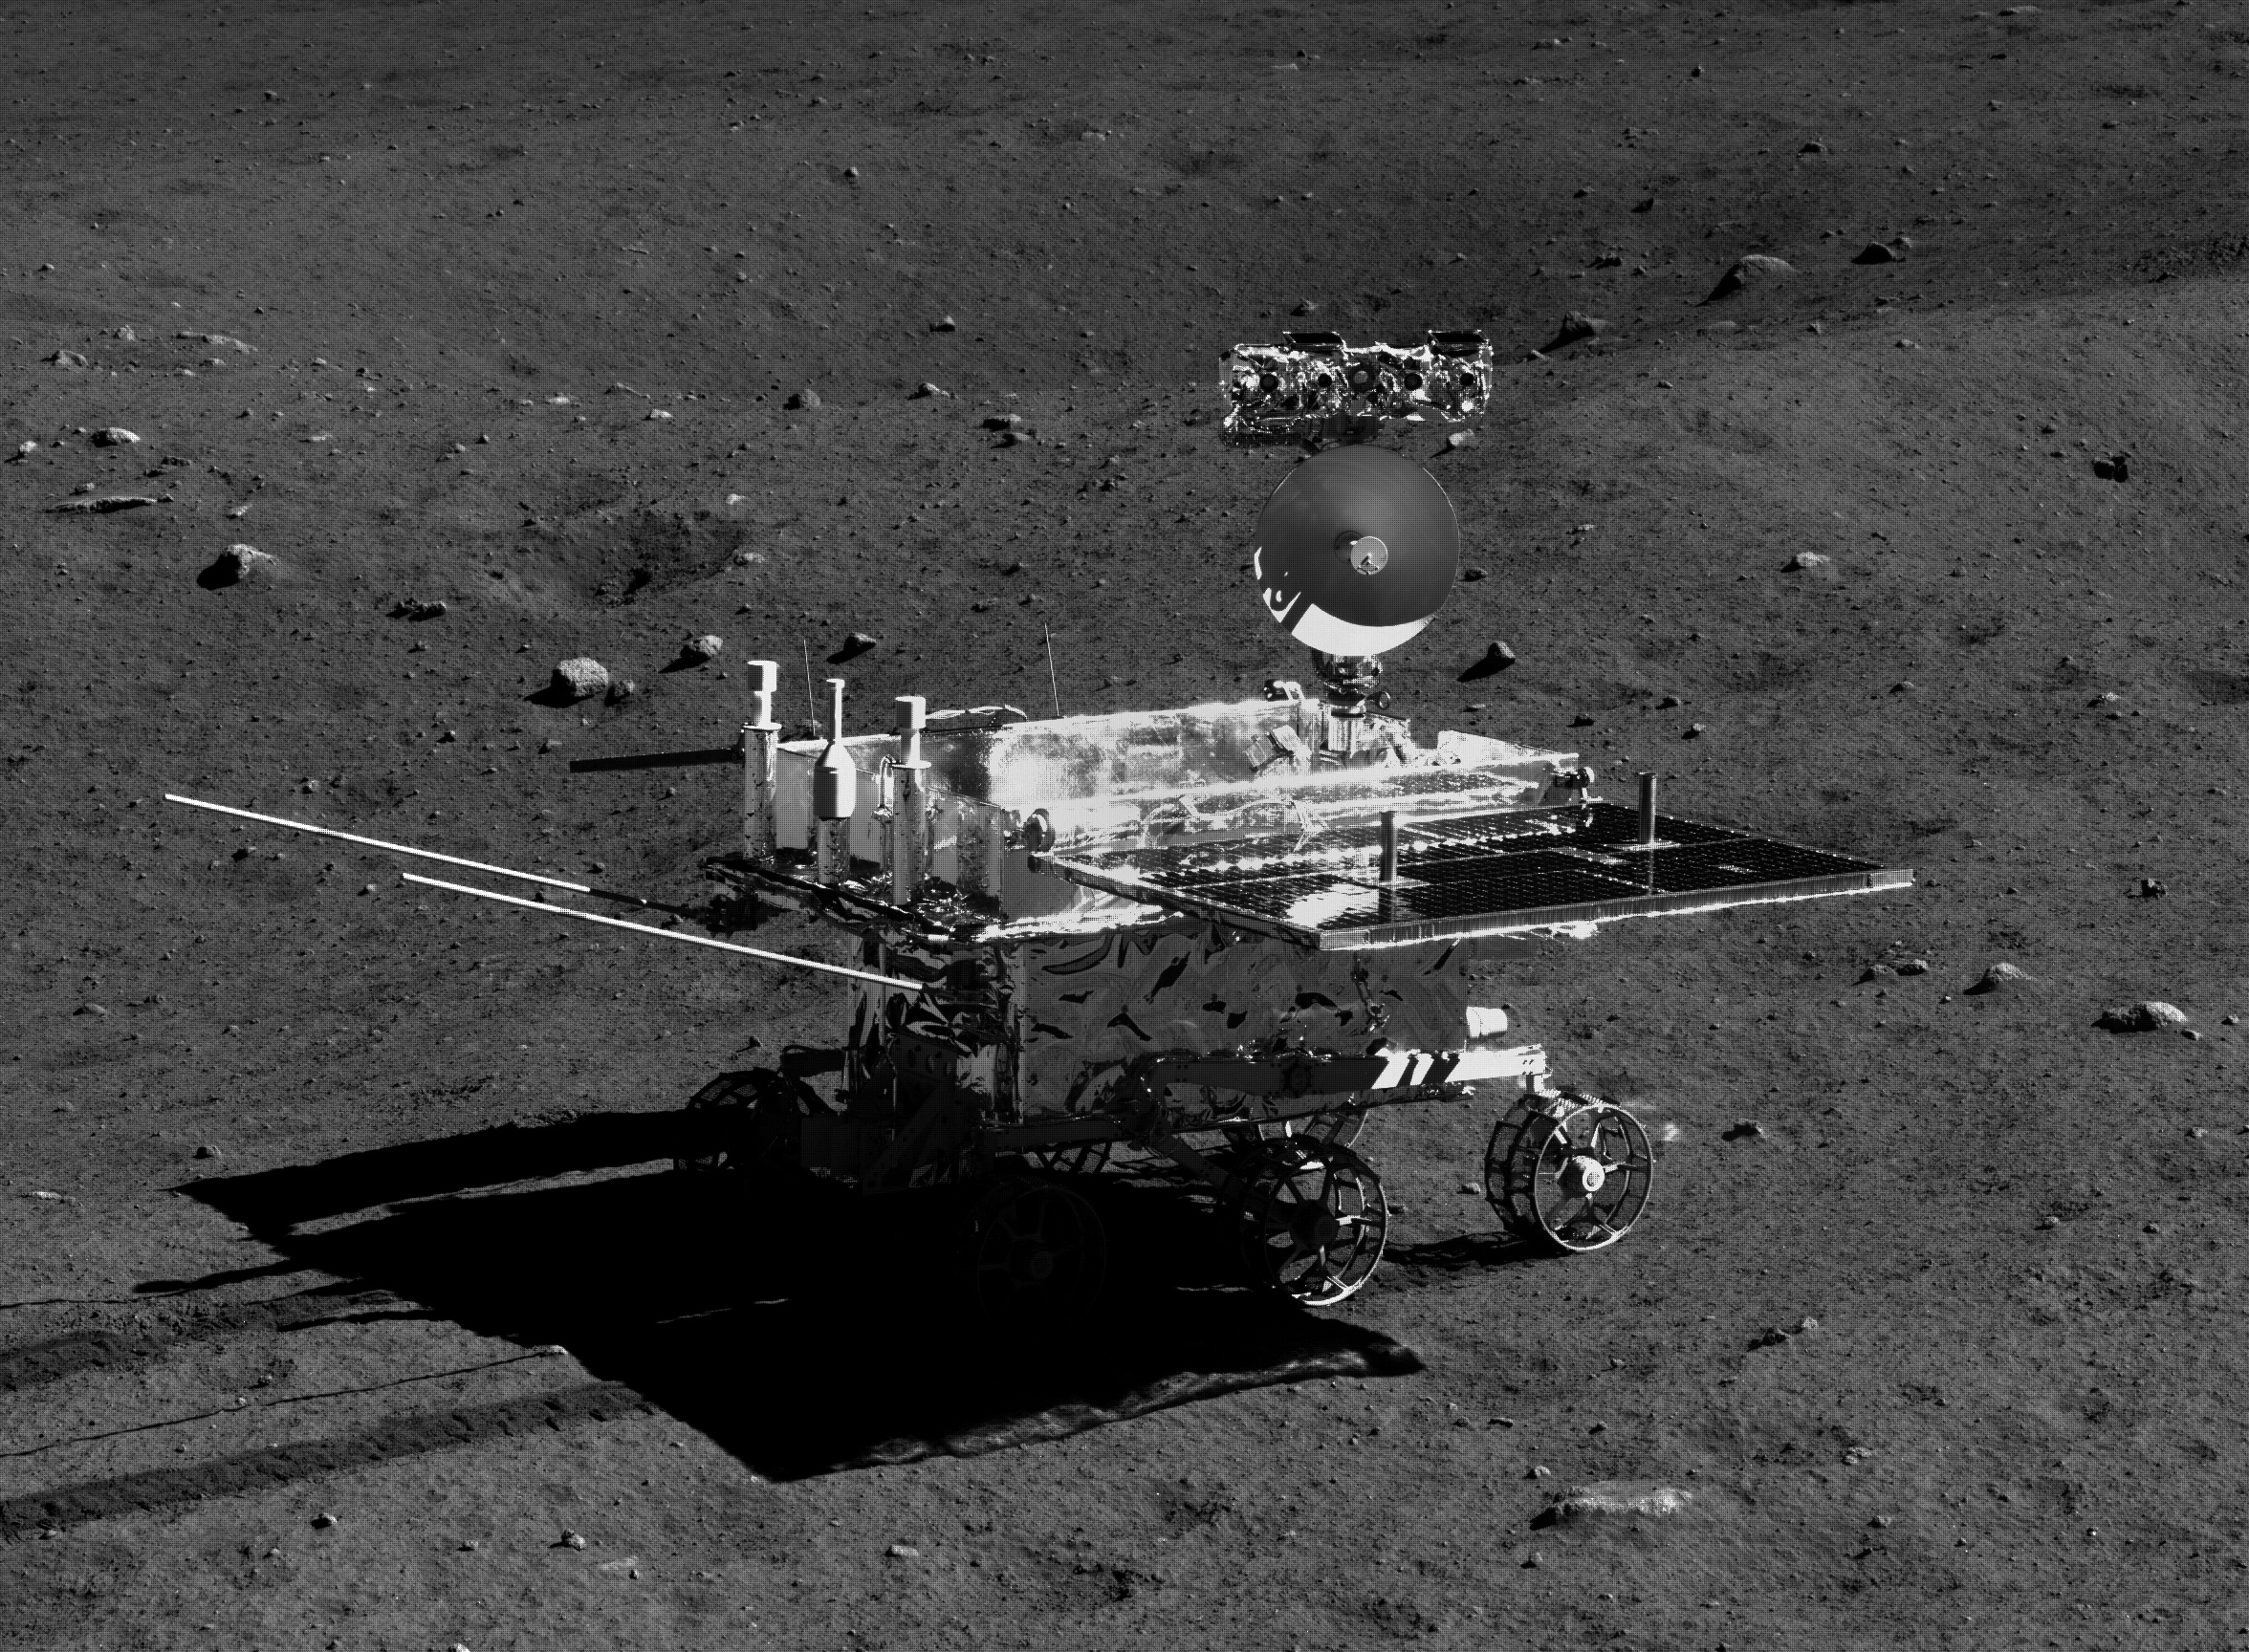 Rover Yutu on the Moon